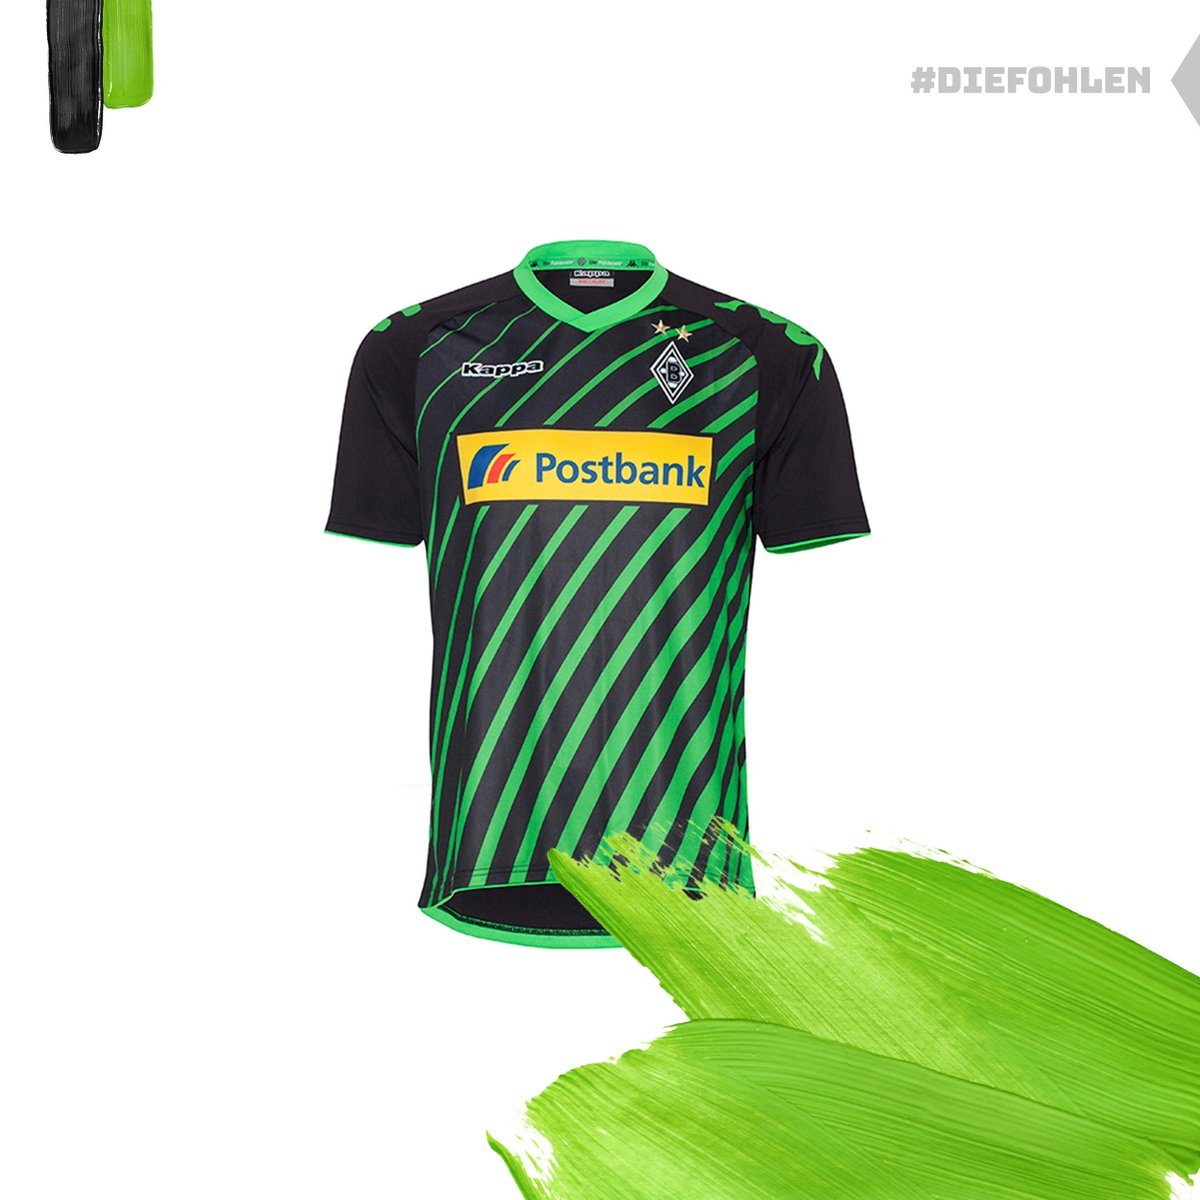 Gladbach On Twitter This Kit Takes Me Back To Diefohlen